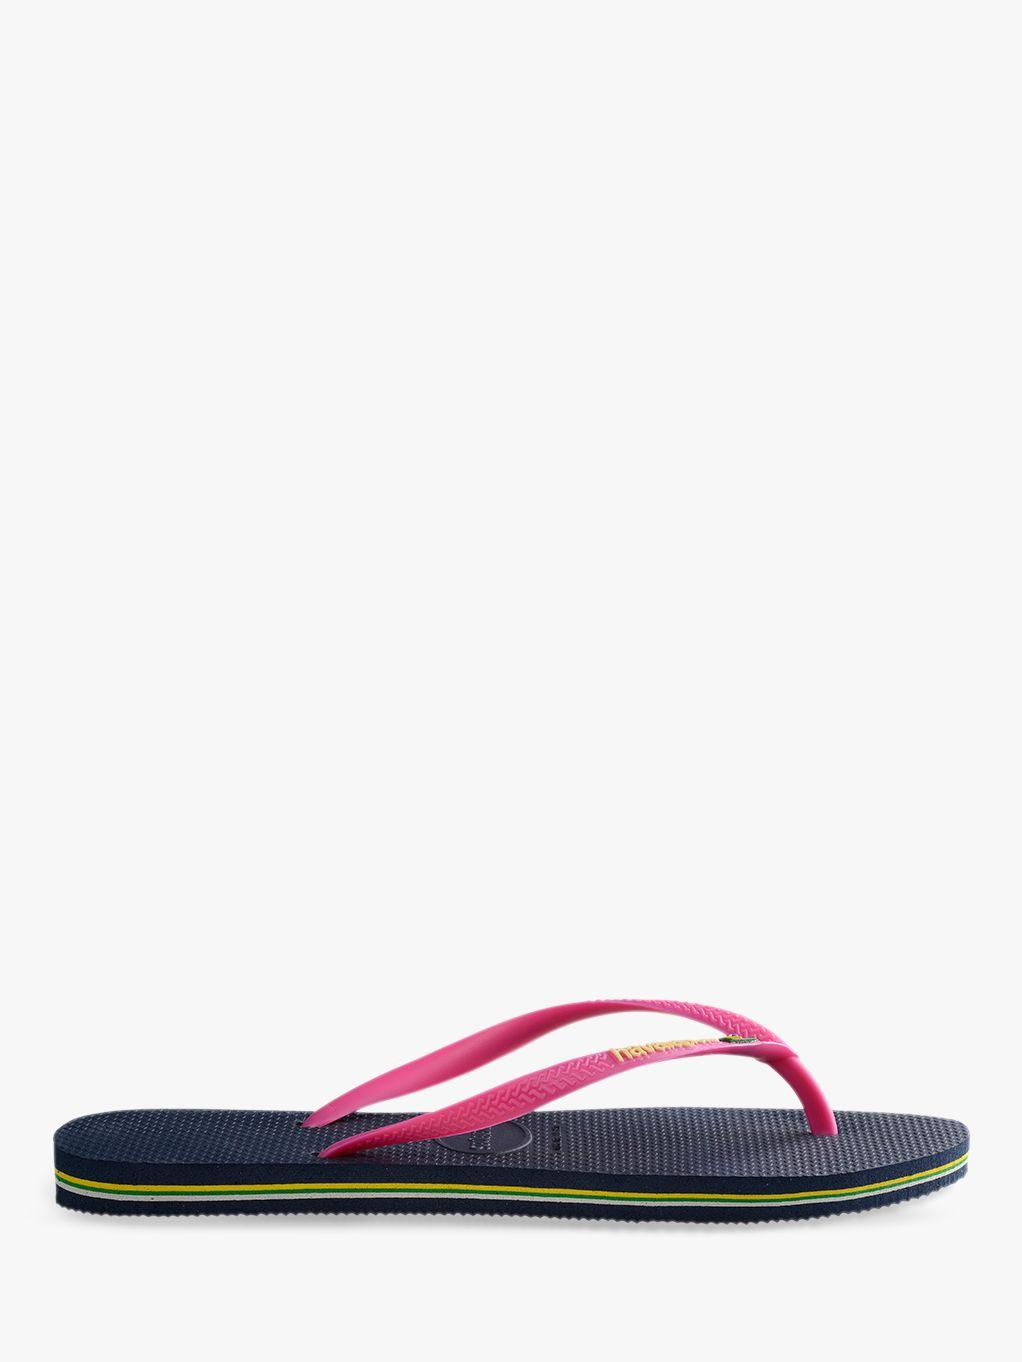 ab8ddfbd8b9f Havaianas. Women s Slim Brasil Logo Flip Flops. £26 From John Lewis and  Partners